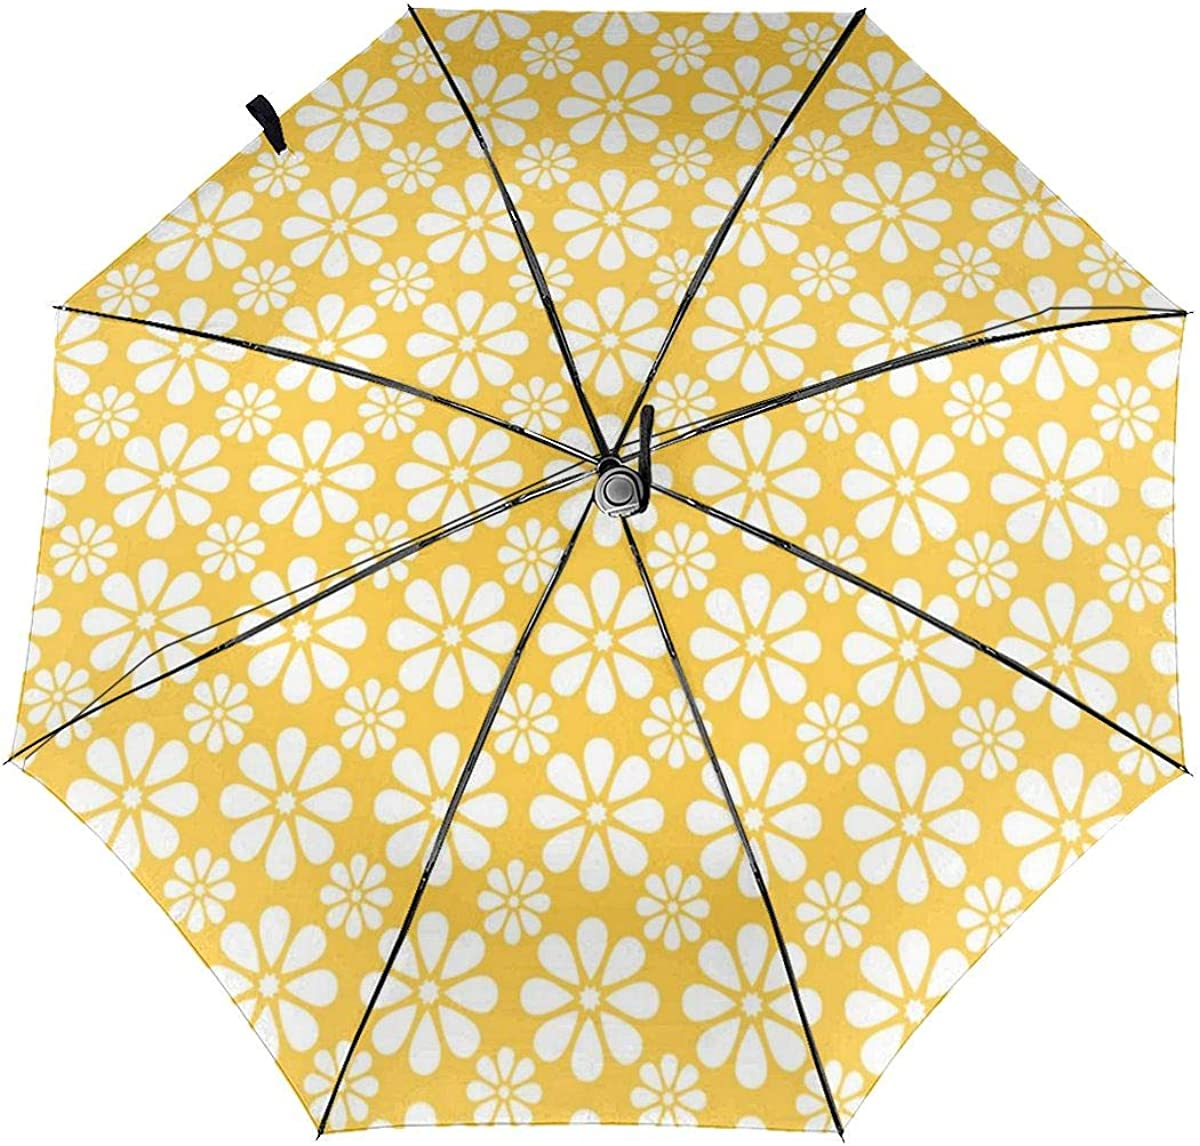 Grid Line Metal Pattern Background Compact Travel Umbrella Windproof Reinforced Canopy 8 Ribs Umbrella Auto Open And Close Button Personalized